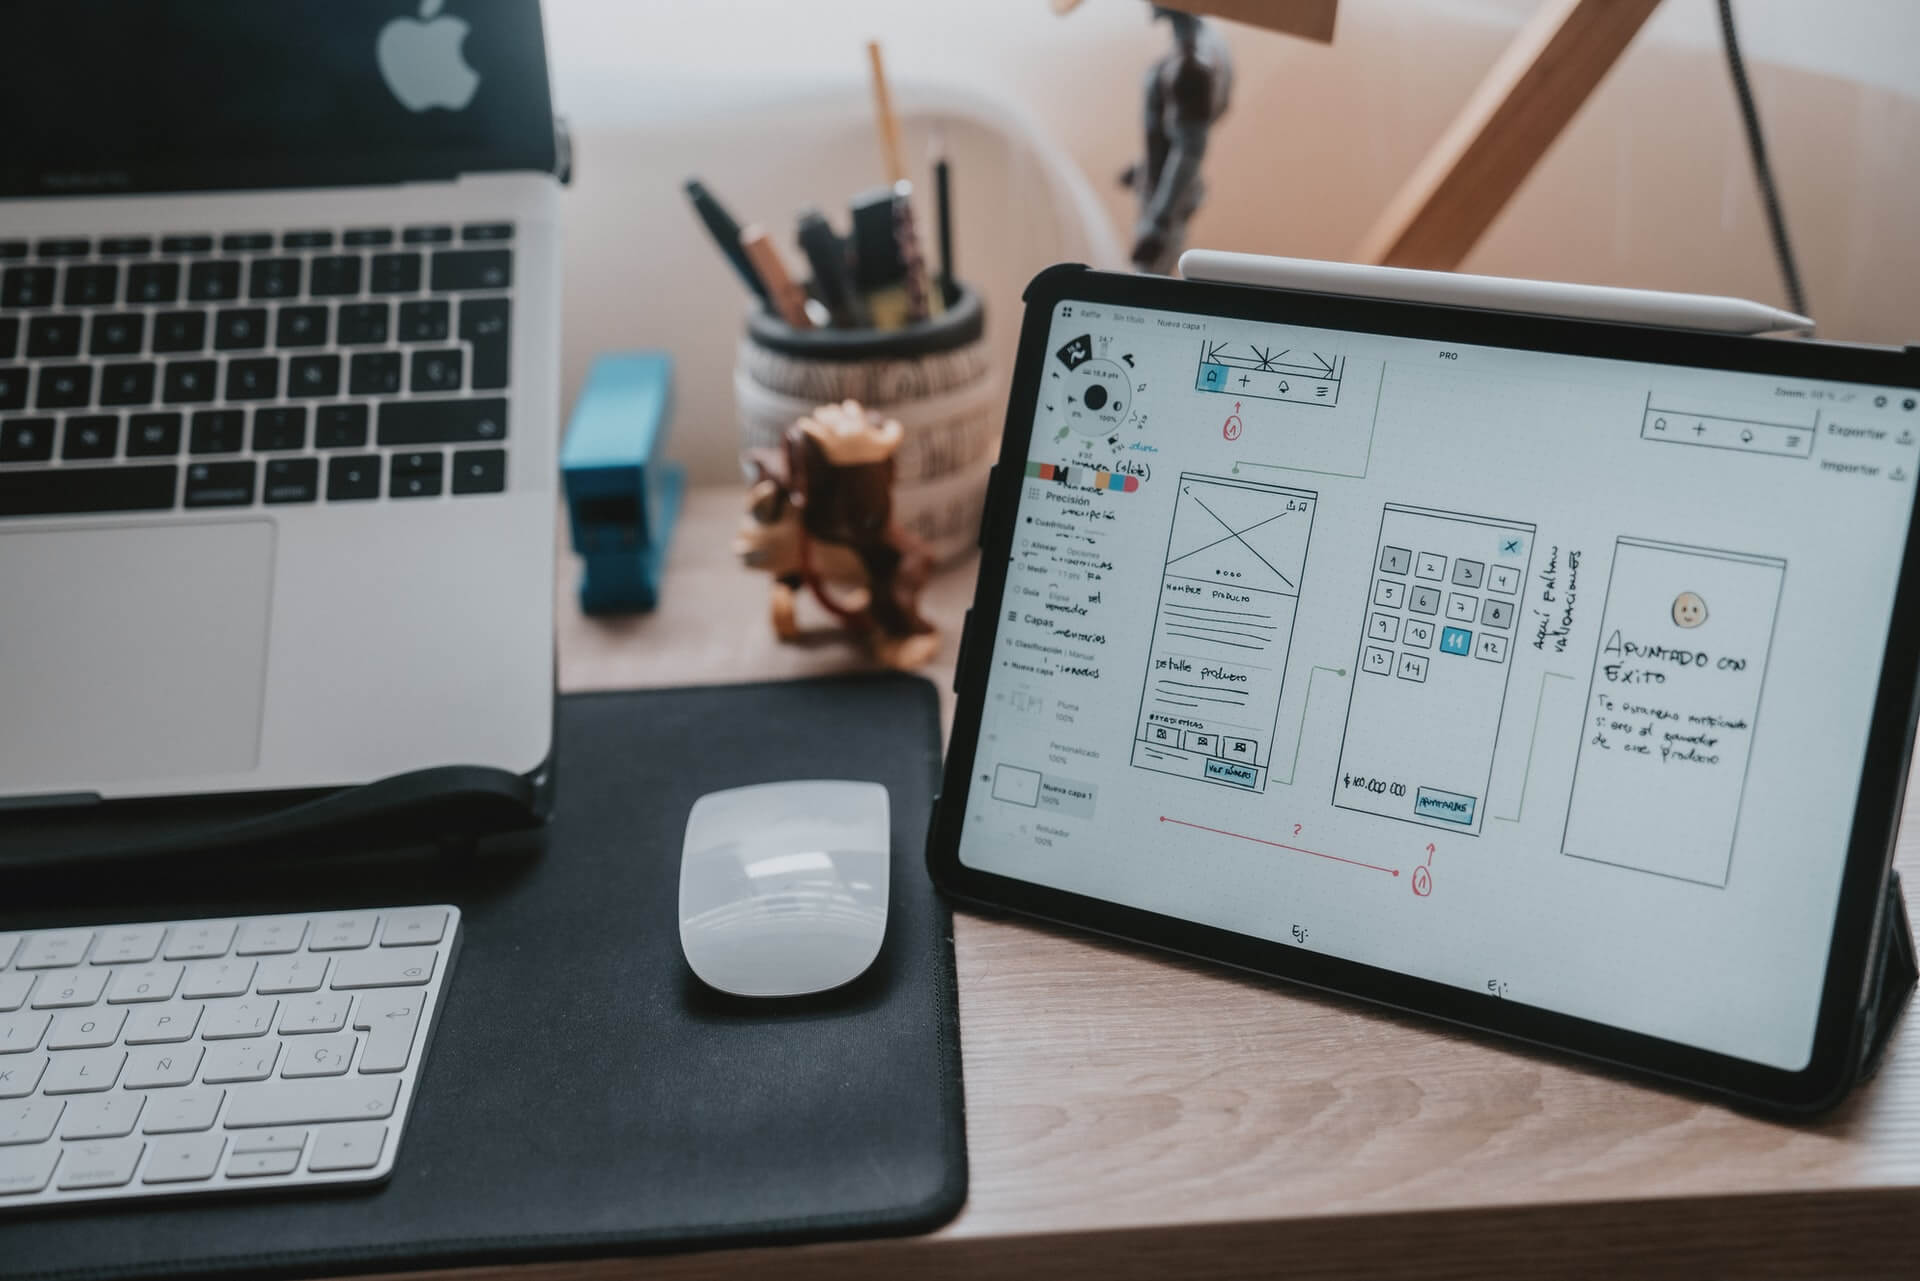 Ipad screen with diagrams for UX design